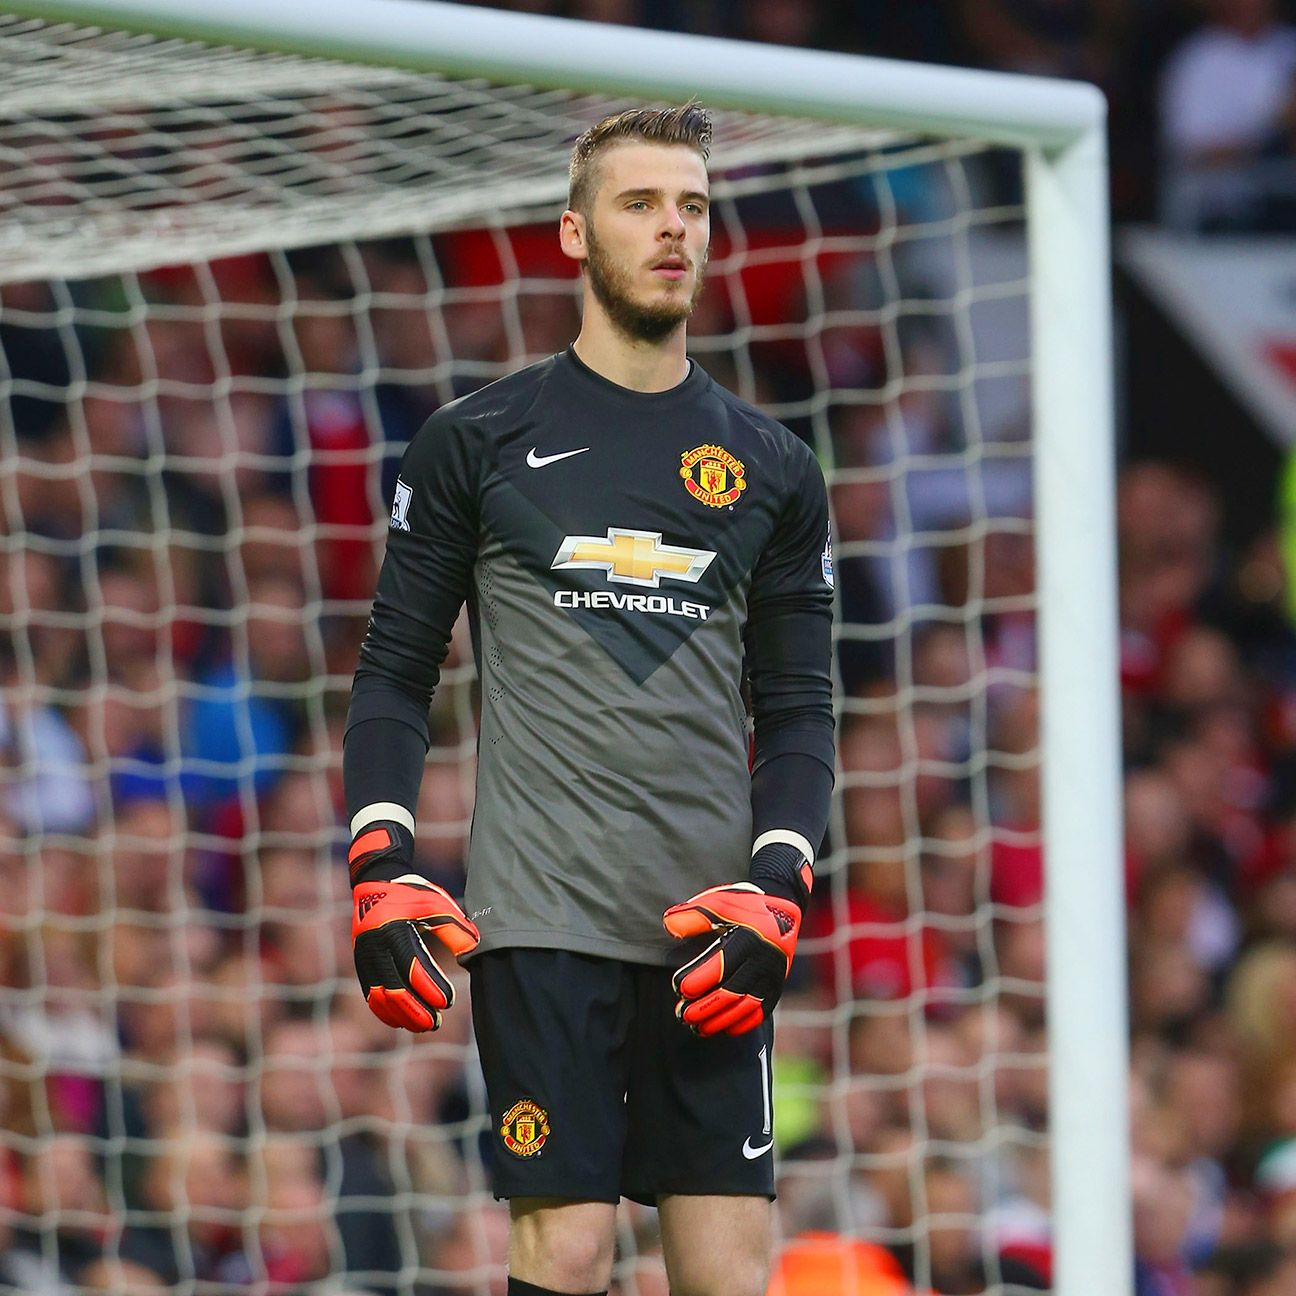 Once again David De Gea stood tall in net for United.